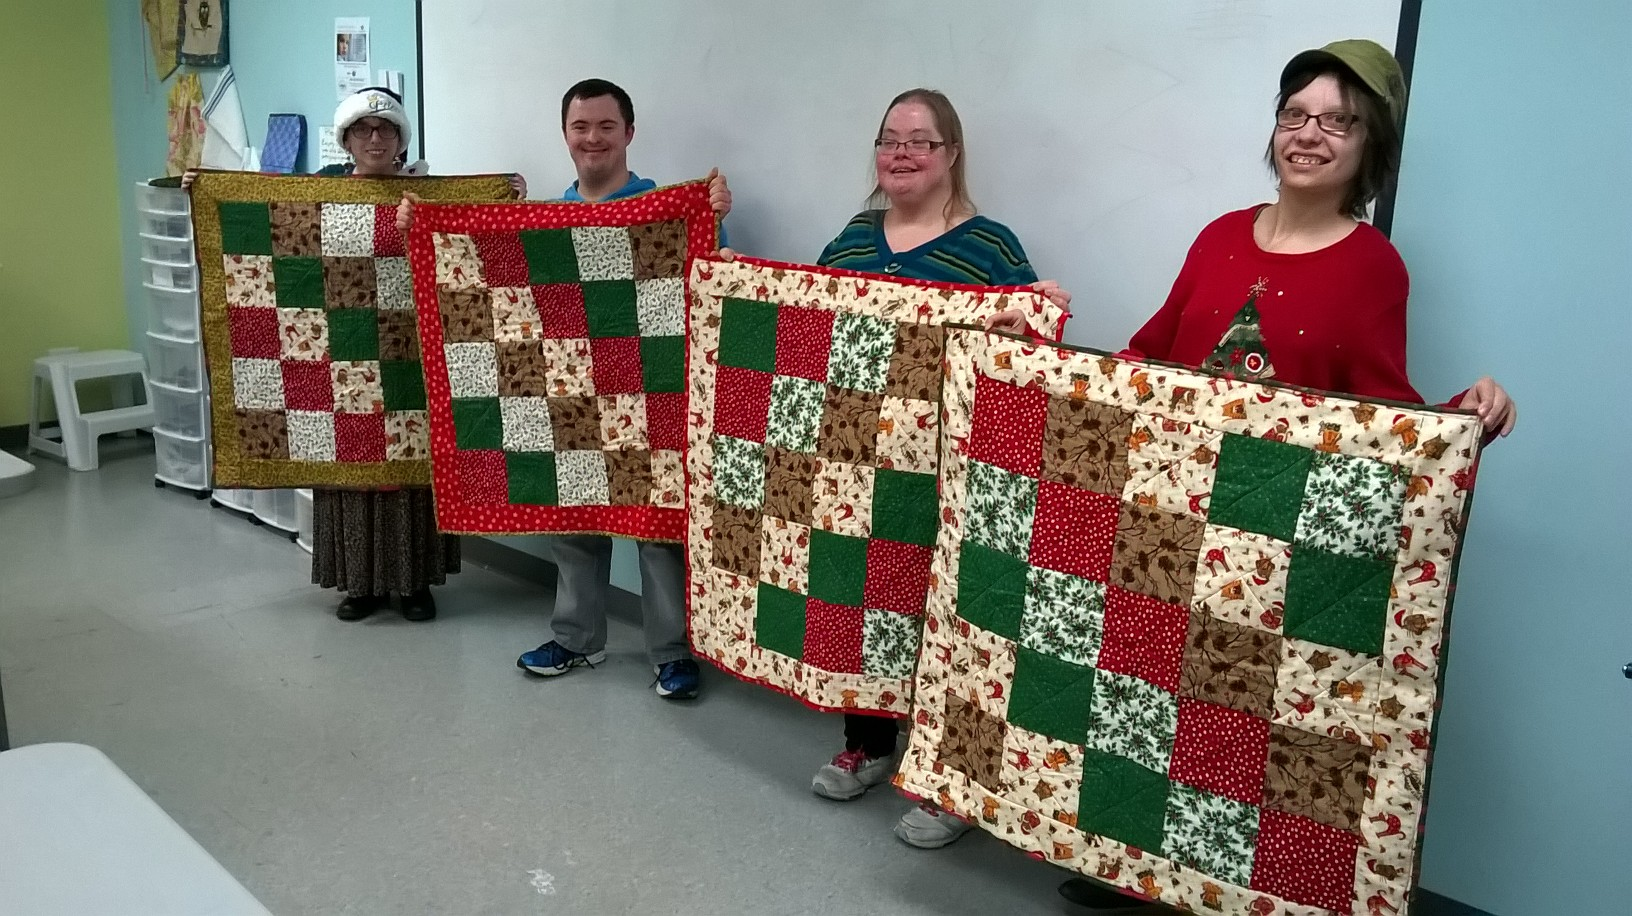 The power of quilting